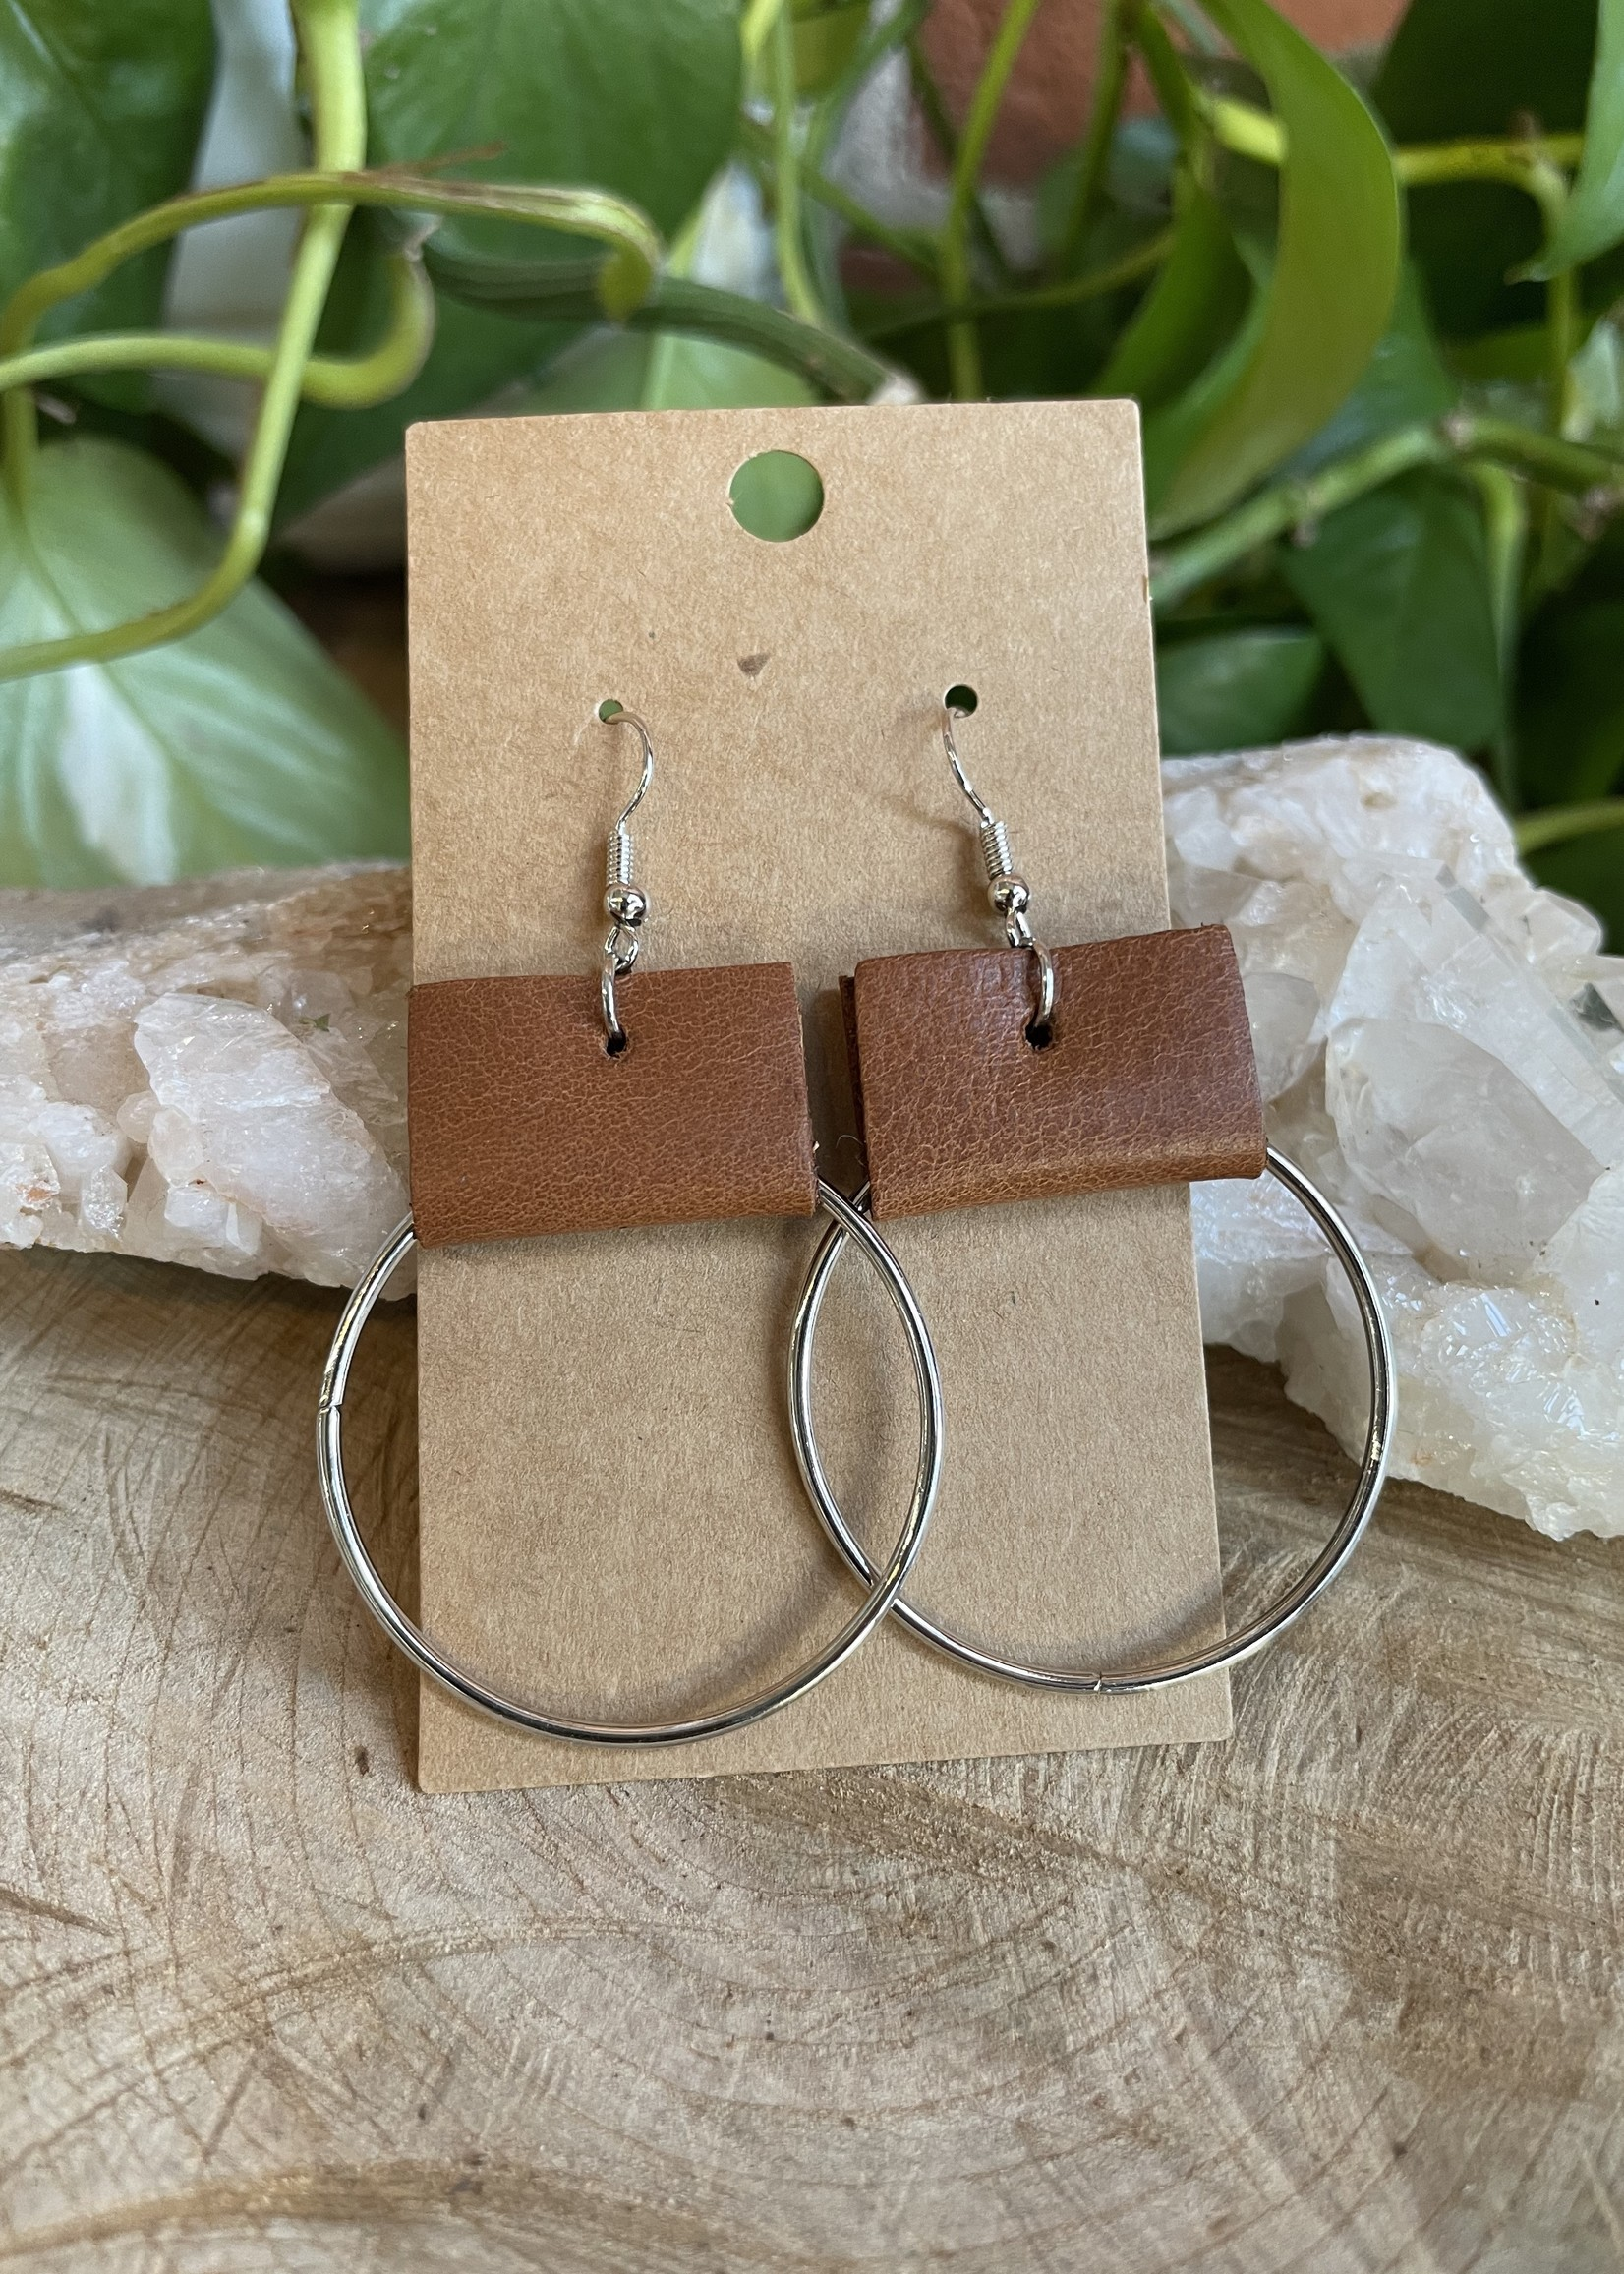 Leather/Circle earrings by Melissa Sue